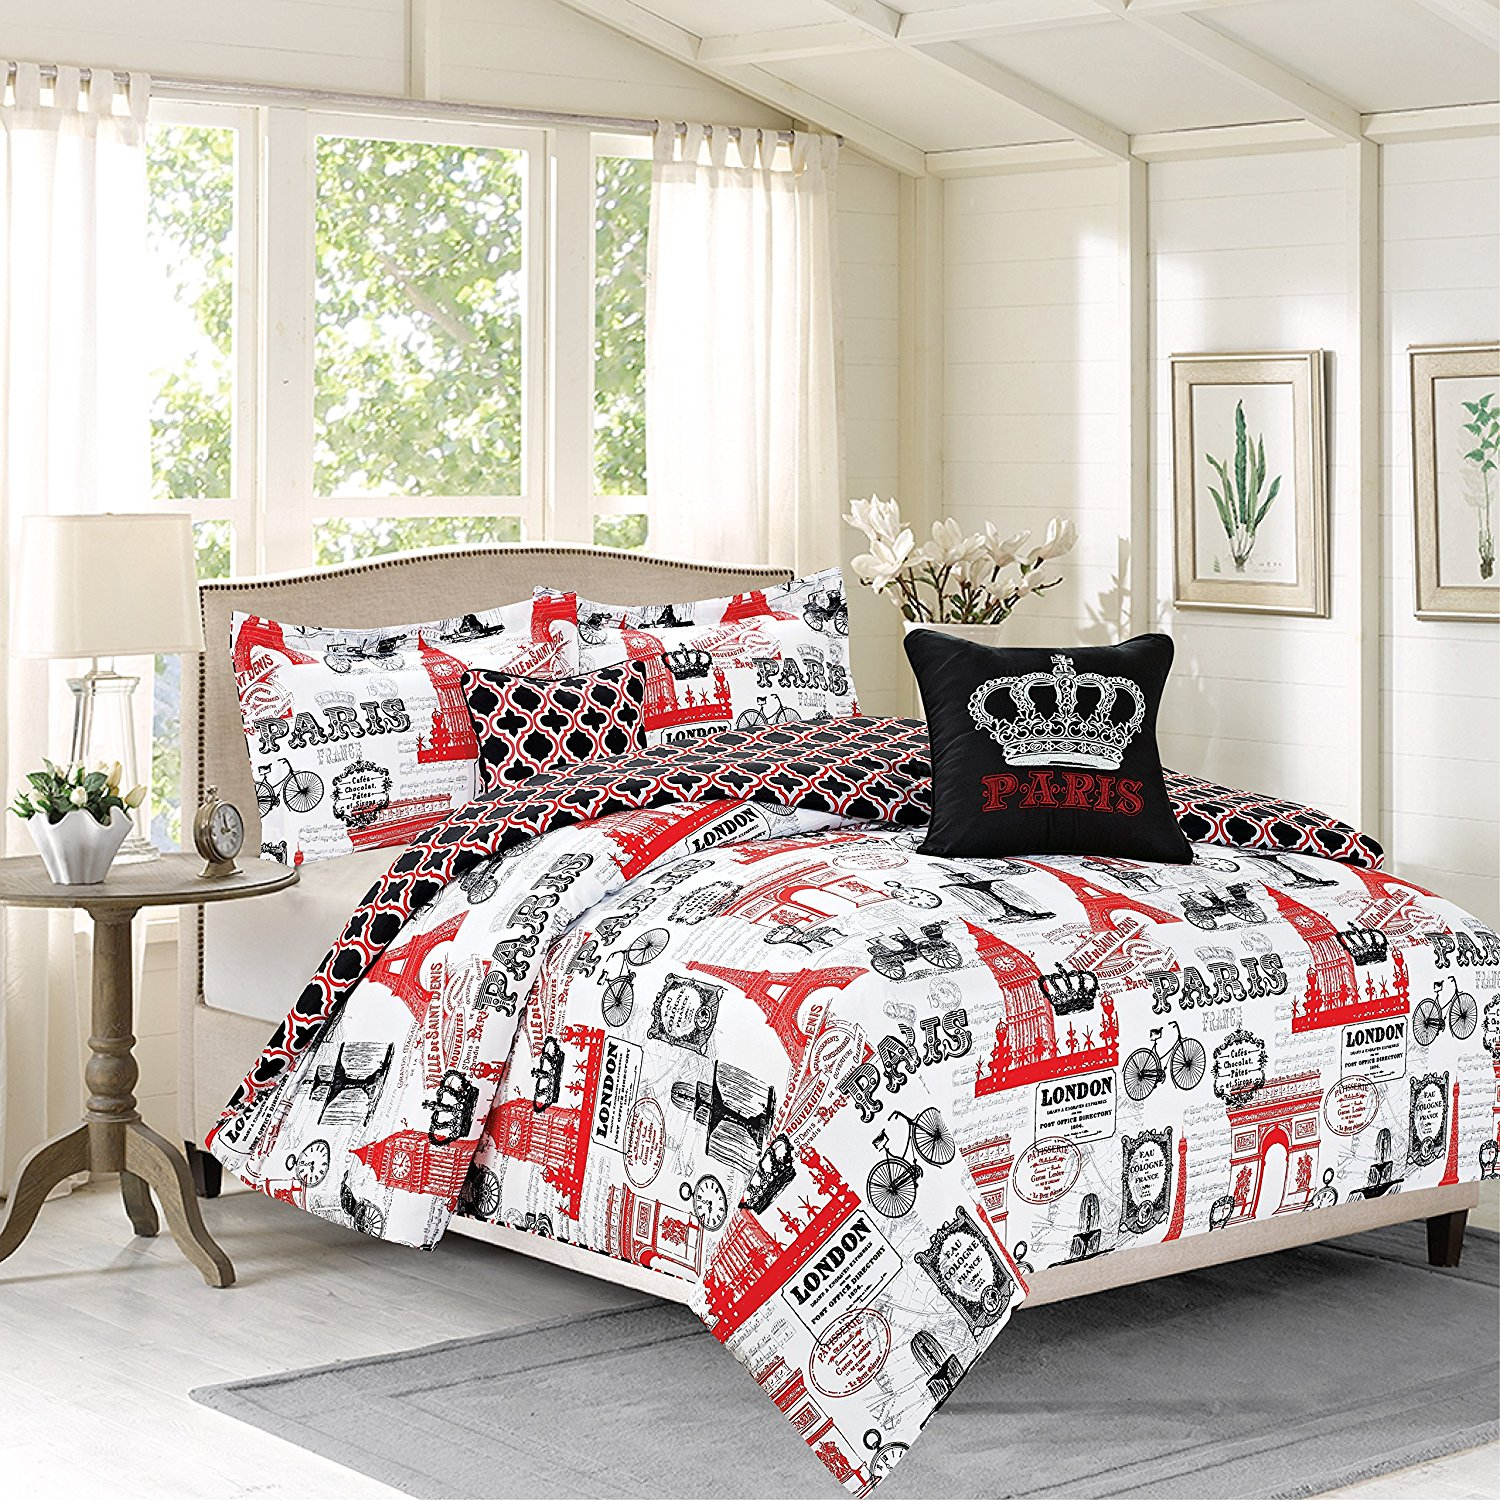 Cheap Eiffel Tower Bedding And forter Set find Eiffel Tower